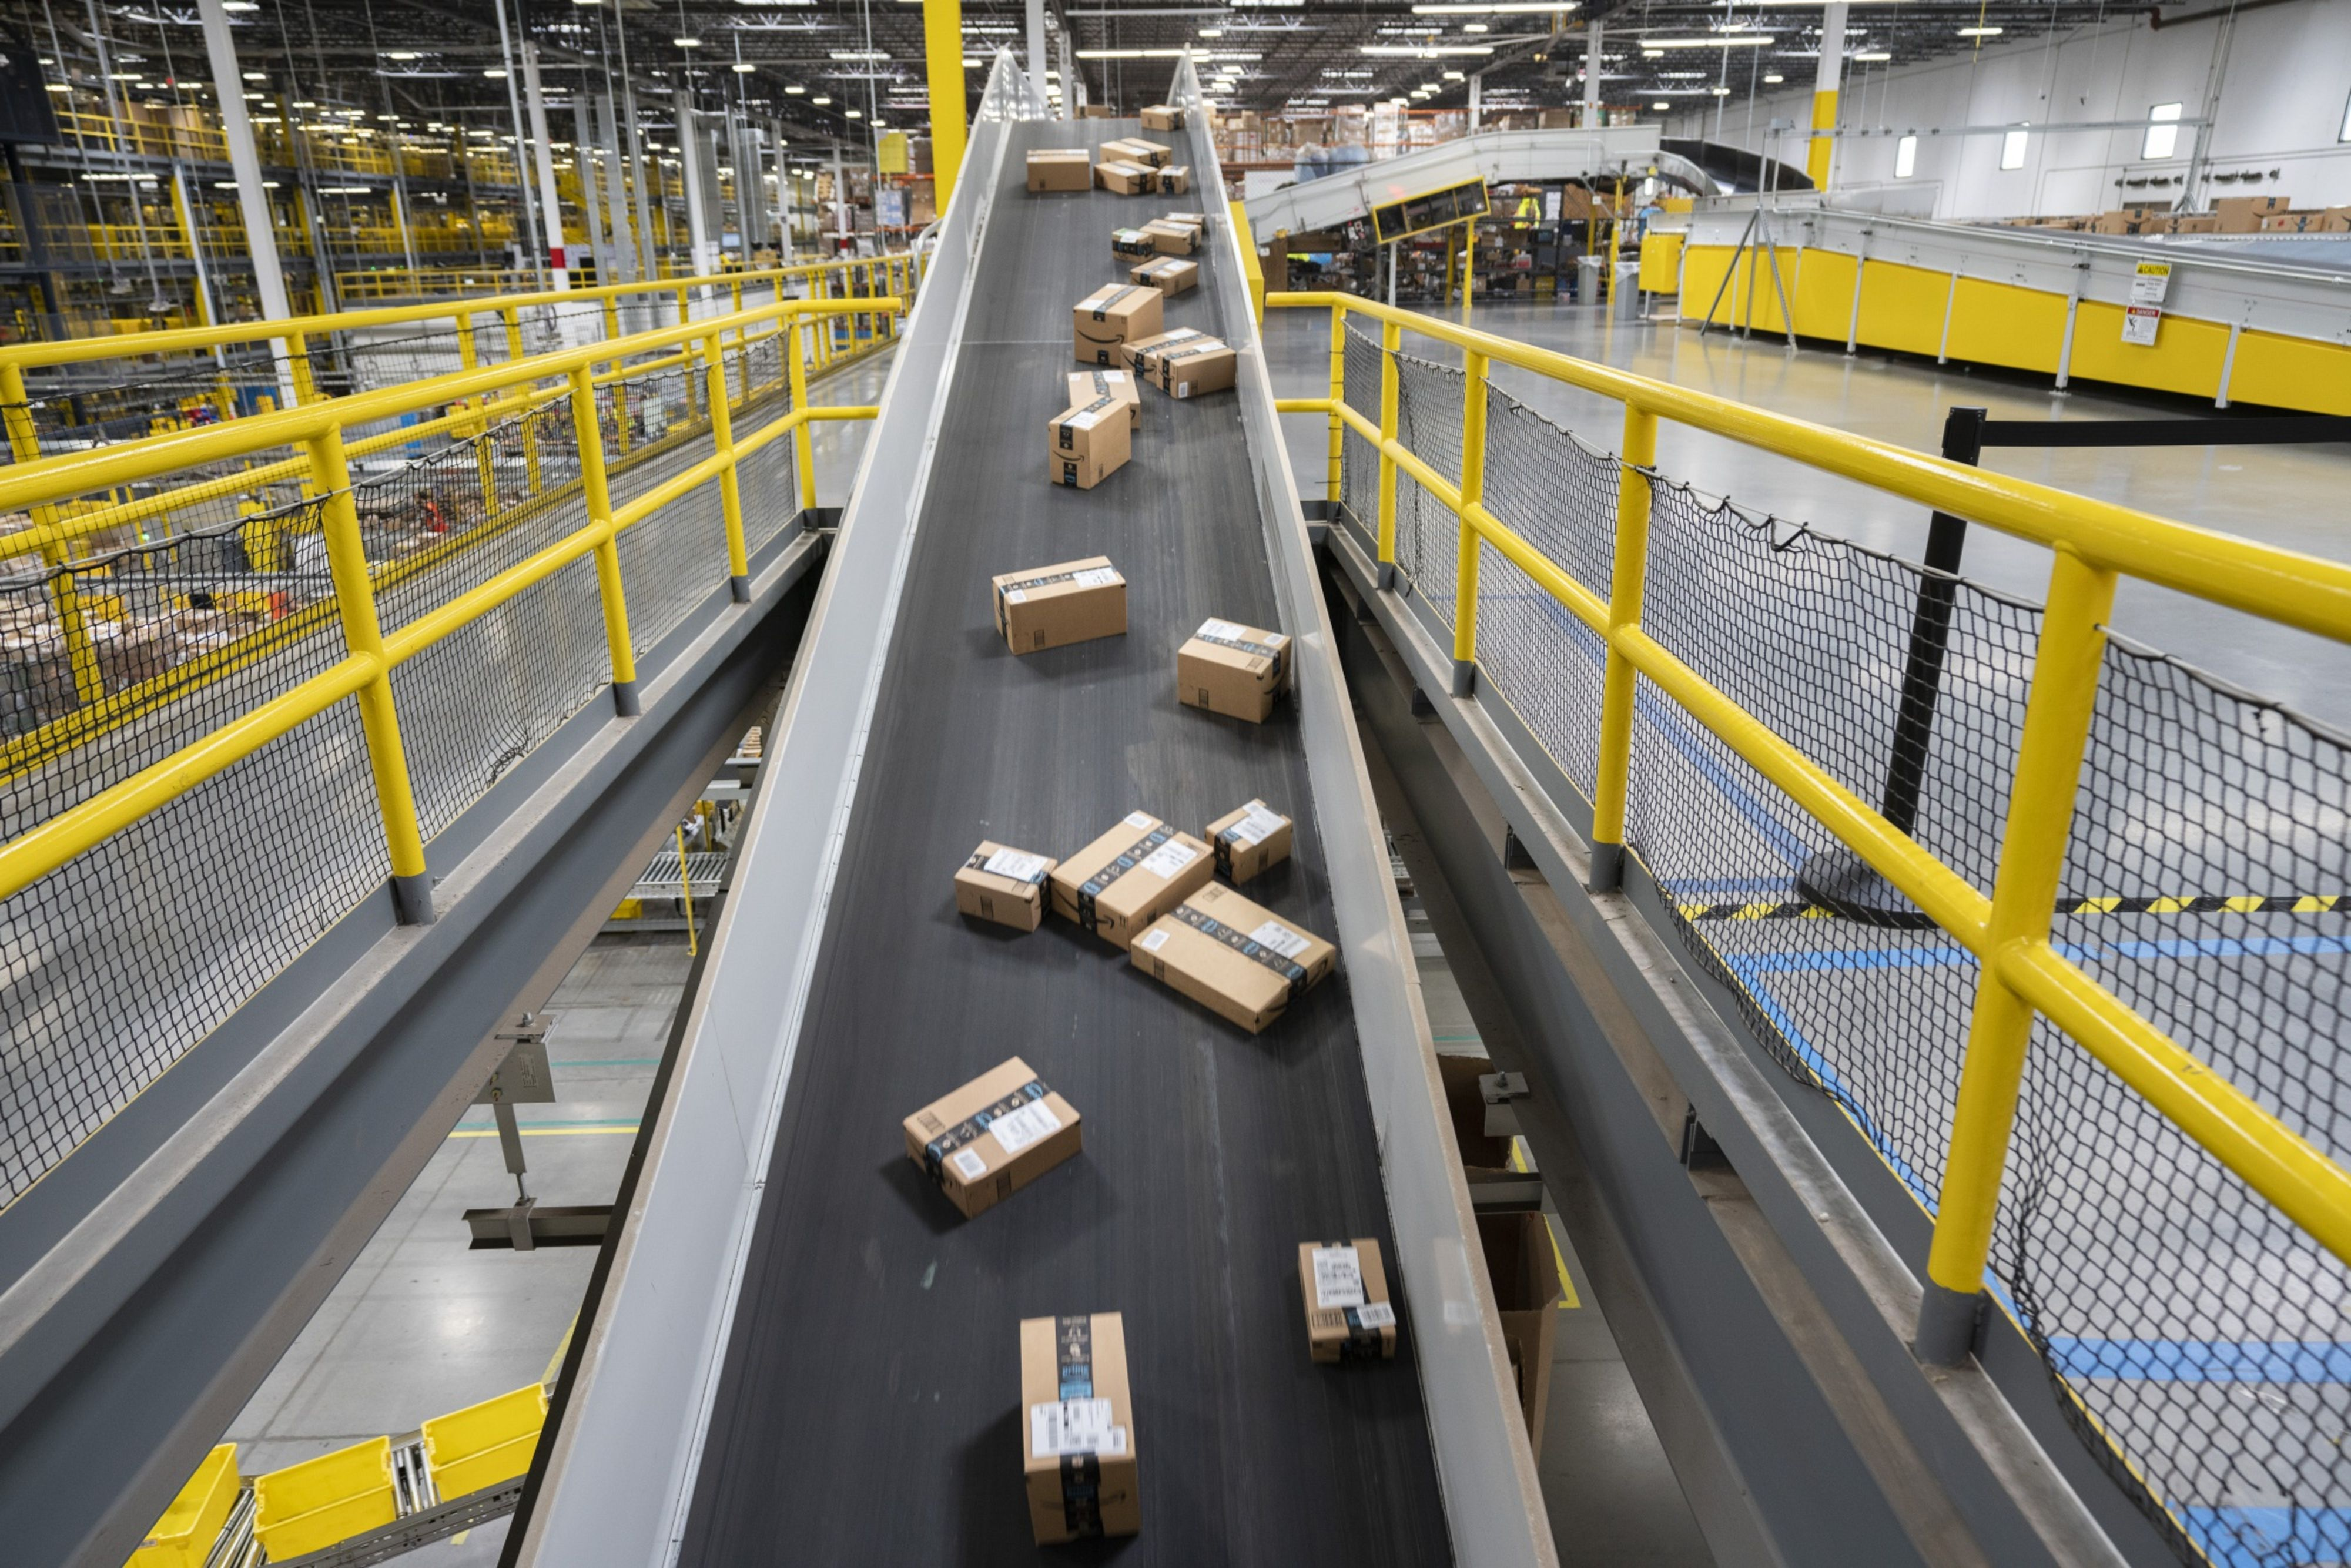 Packages are getting ready to head onto trucks atAmazon's Baltimore robotics fulfillment center.